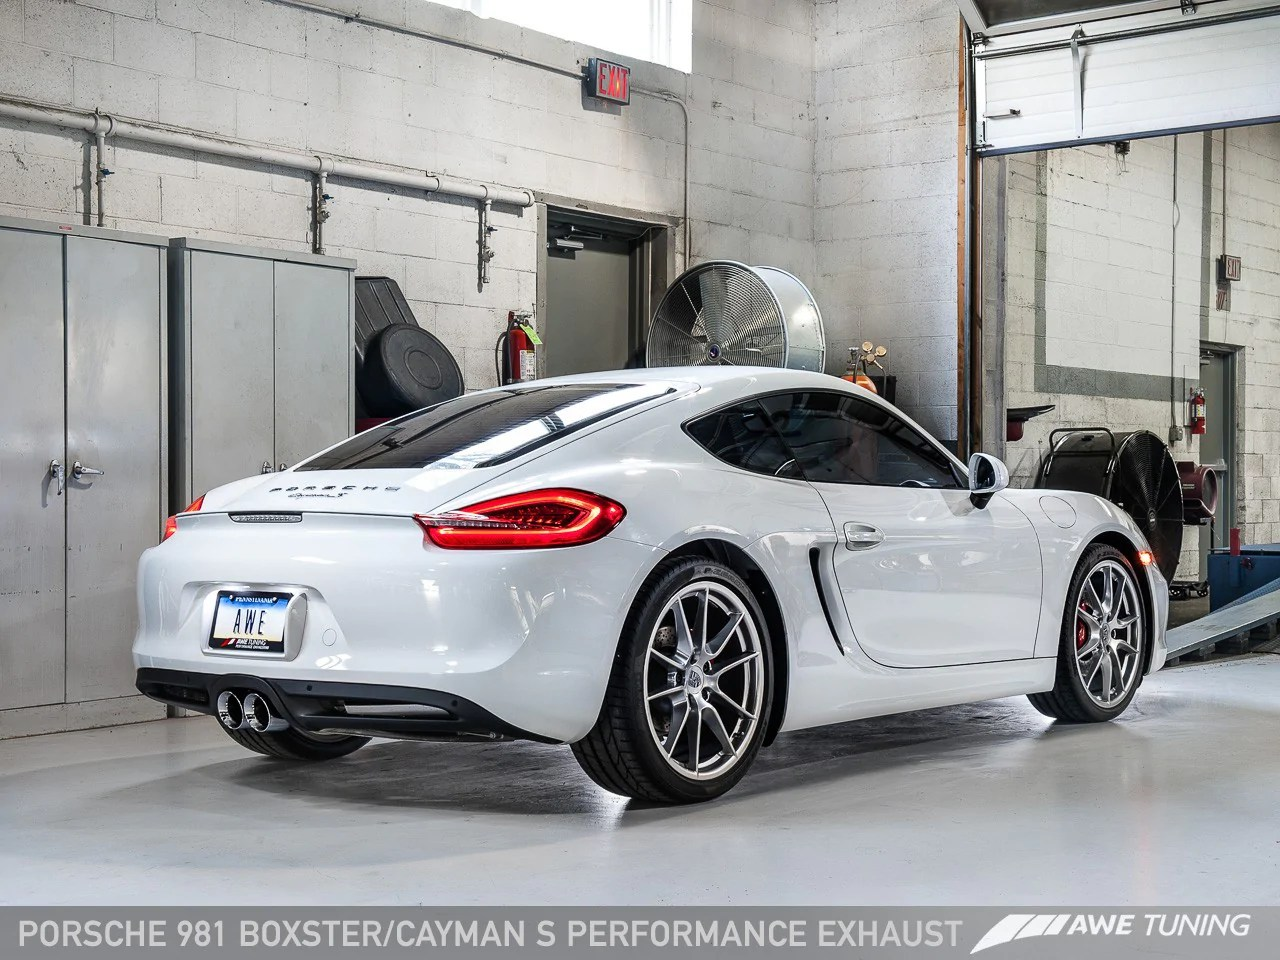 medium resolution of  awe tuning exhaust system cayman boxster 981 flat 6 motorsports porsche